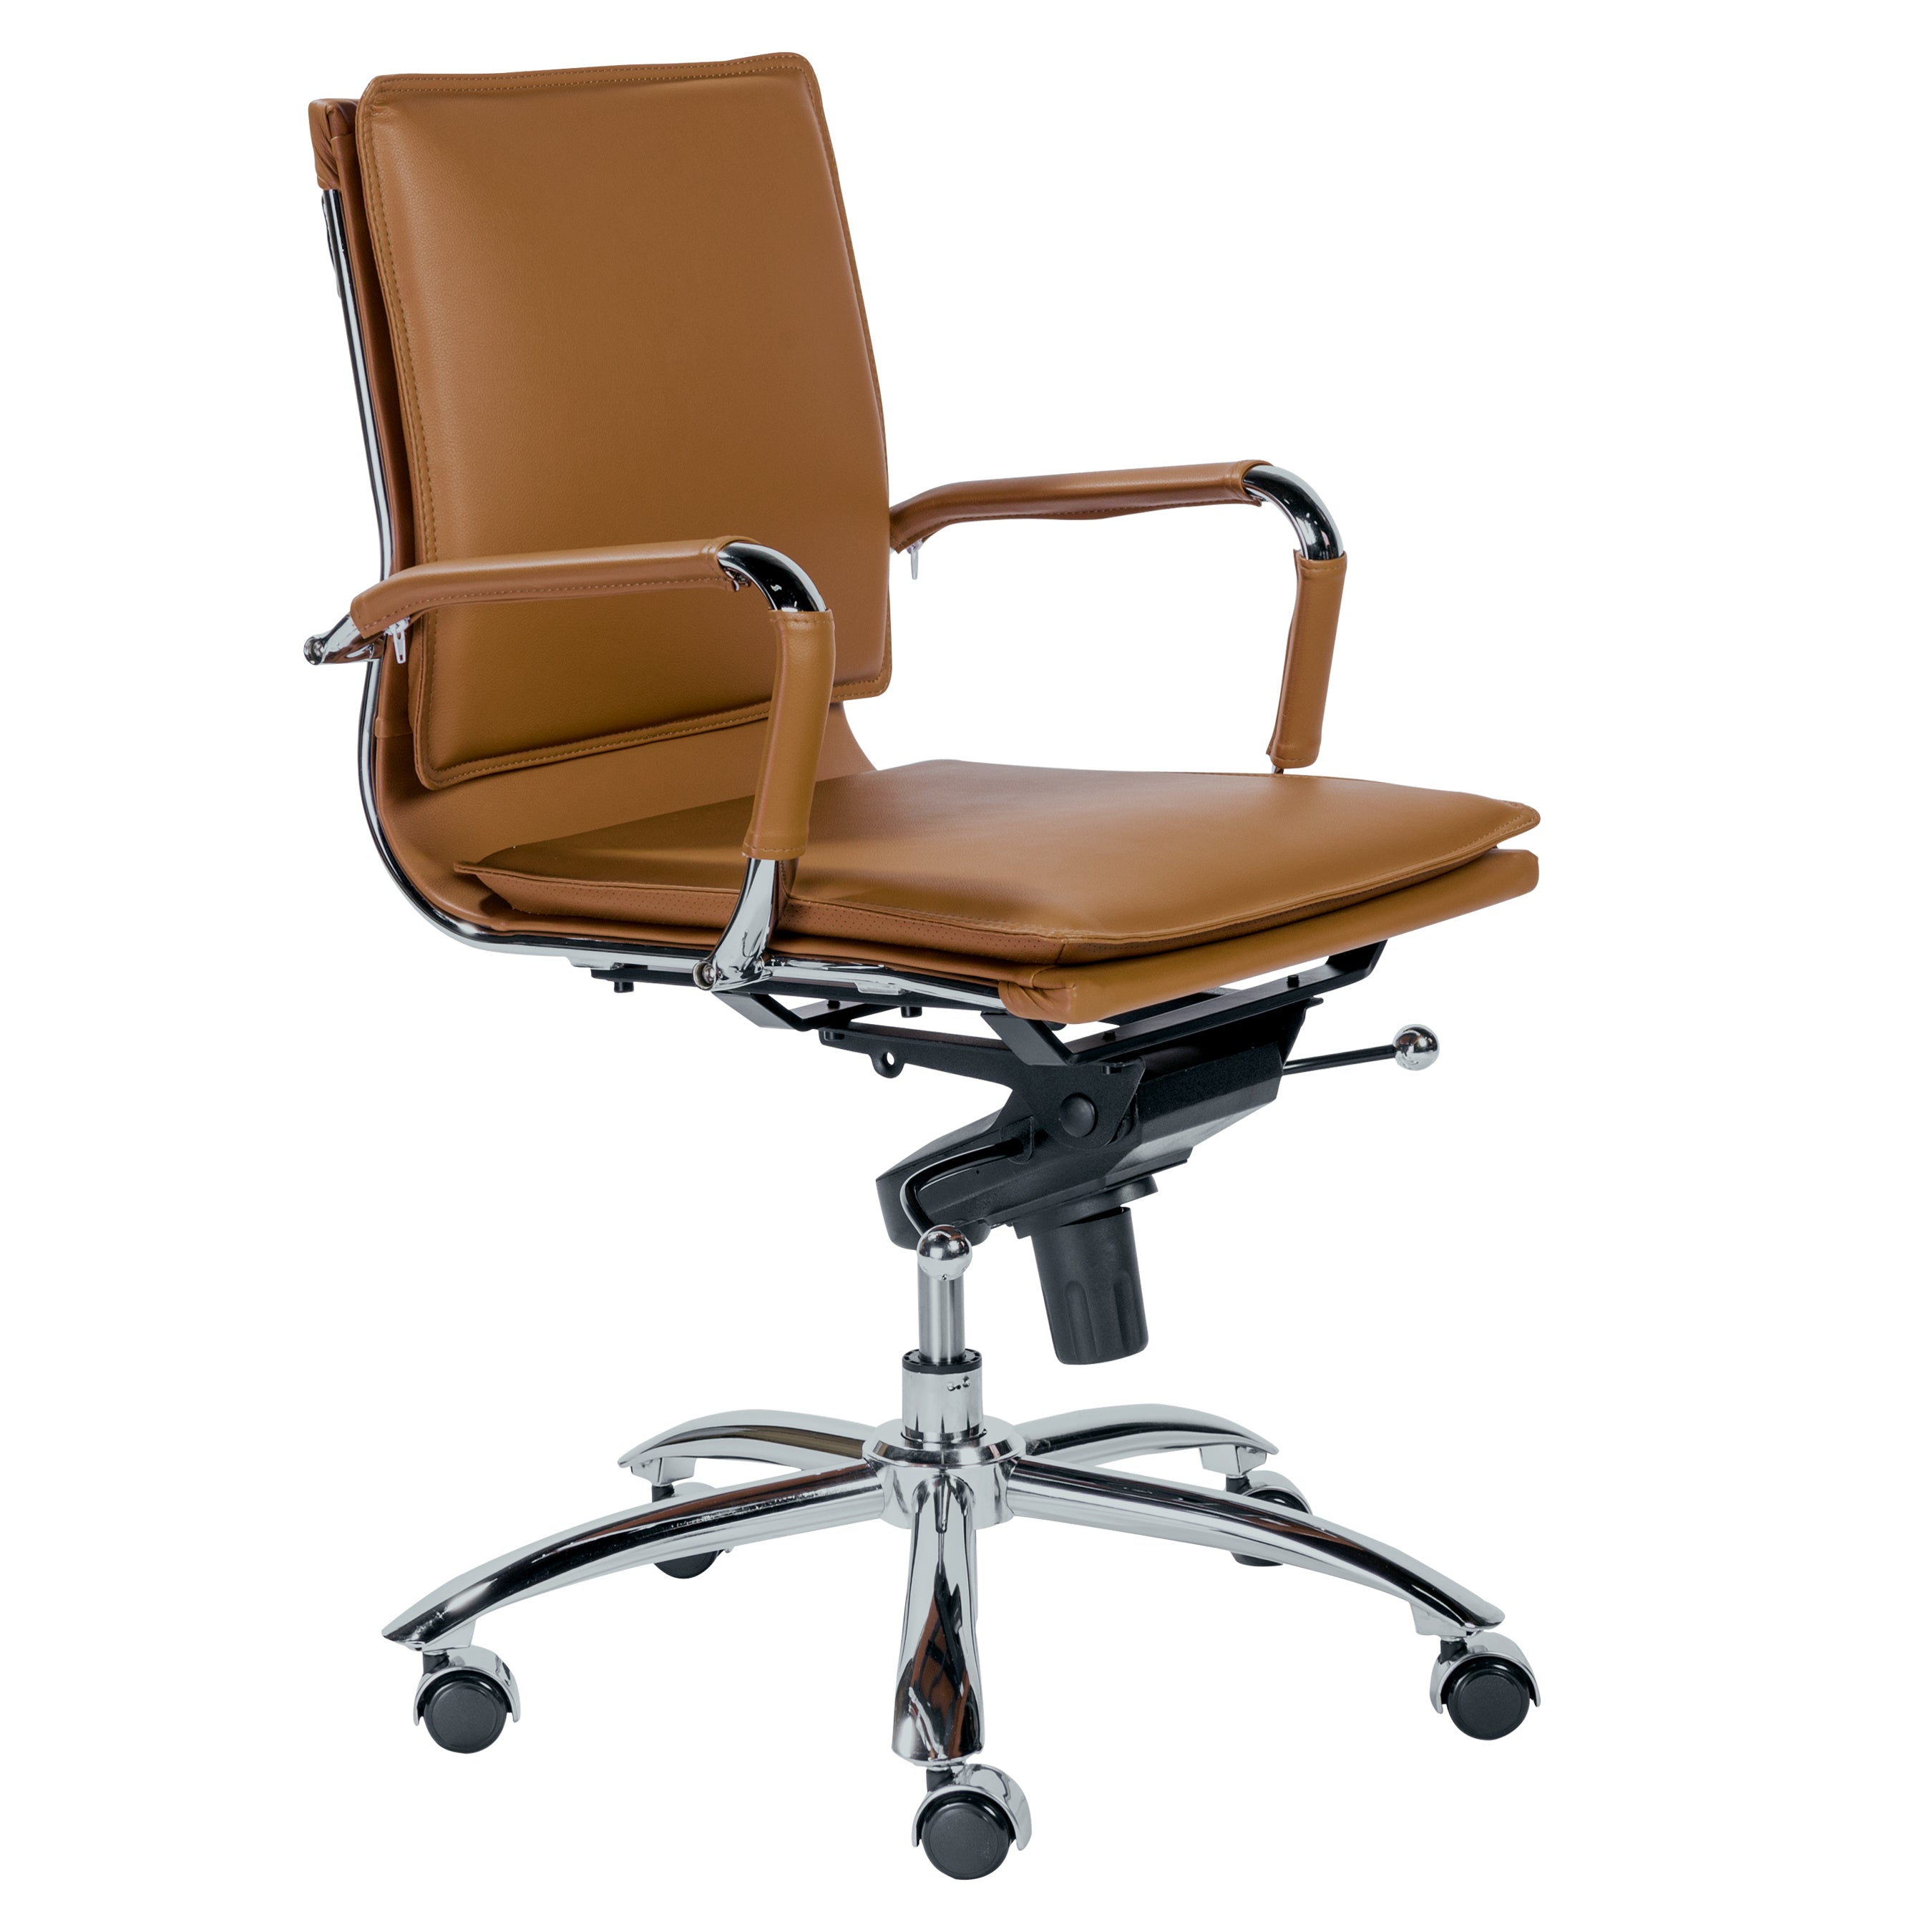 Modern Low Back Leather & Chrome Office Chair in Cognac